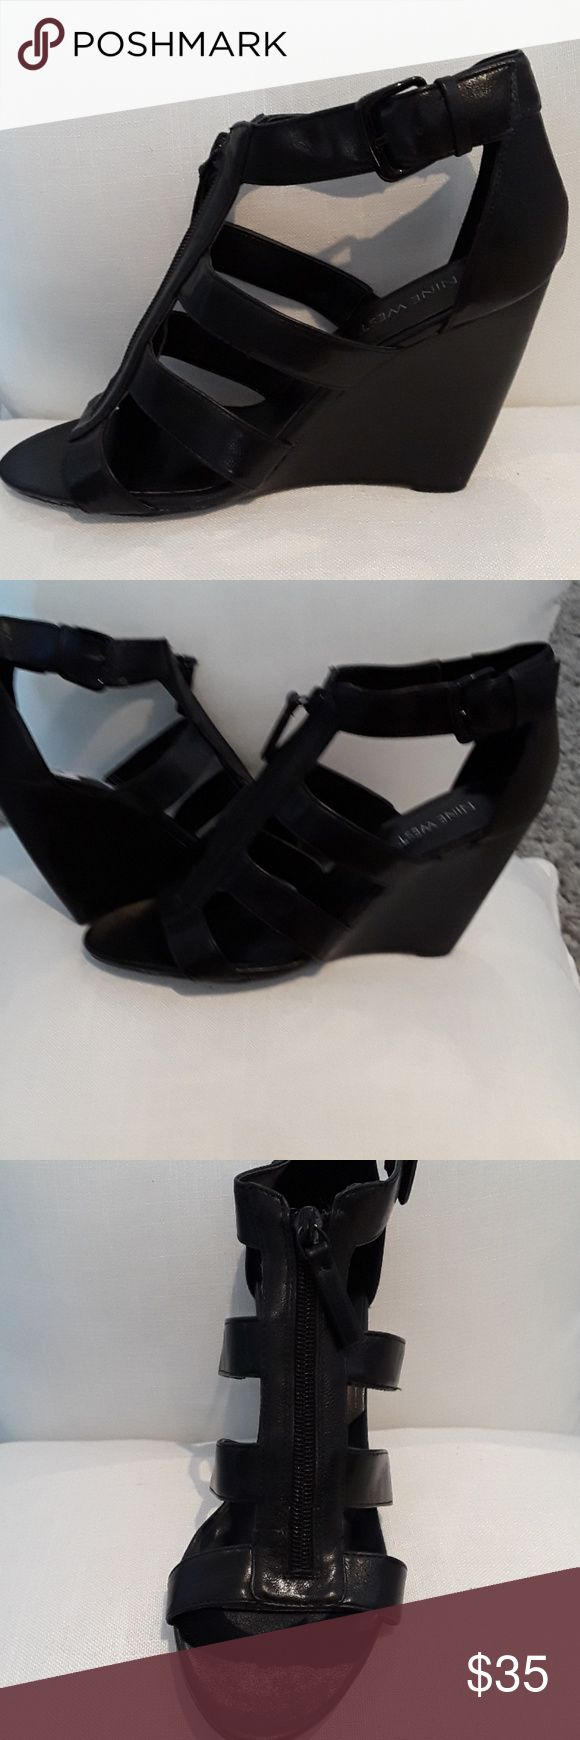 TONIGHT ONLY Nine West Black Strappy Wedges LIKE NEW Nine West Black Strappy Wedges SIZE 8.5 Very Versatile Wedges for day or night and really comfortable!!!! Nine West Shoes Wedges